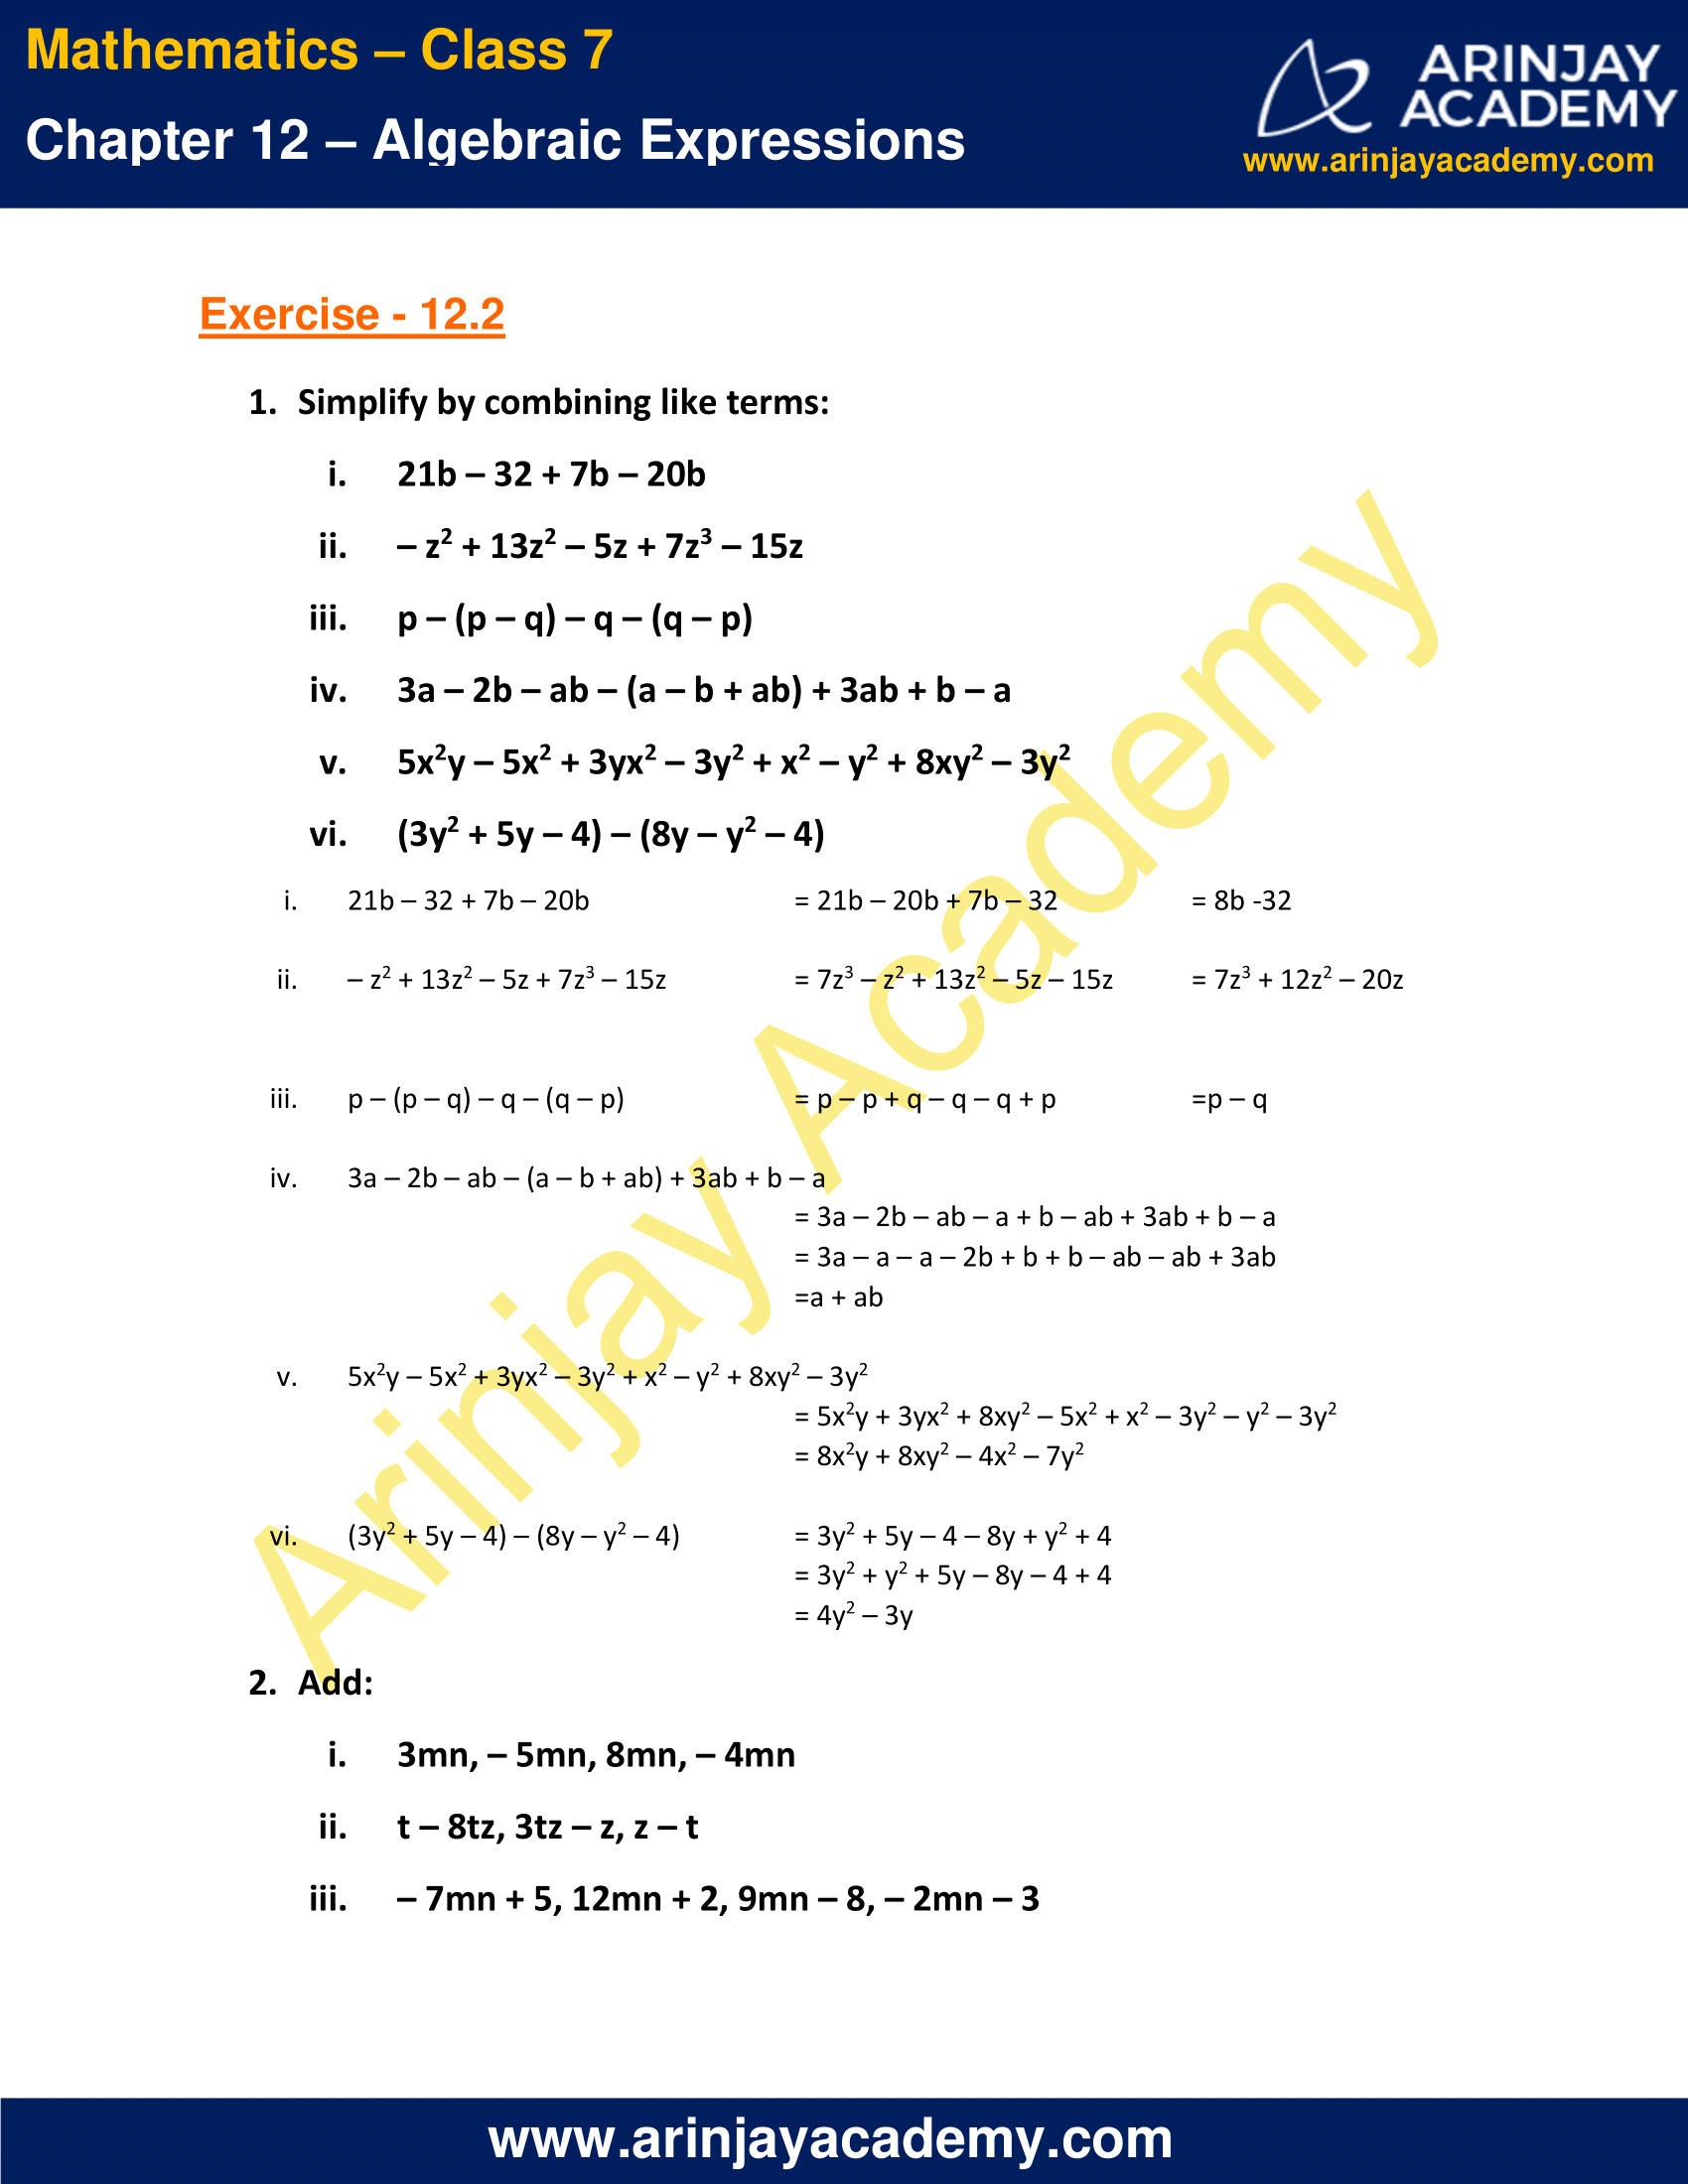 NCERT Solutions for Class 7 Maths Chapter 12 Exercise 12.2 image 1